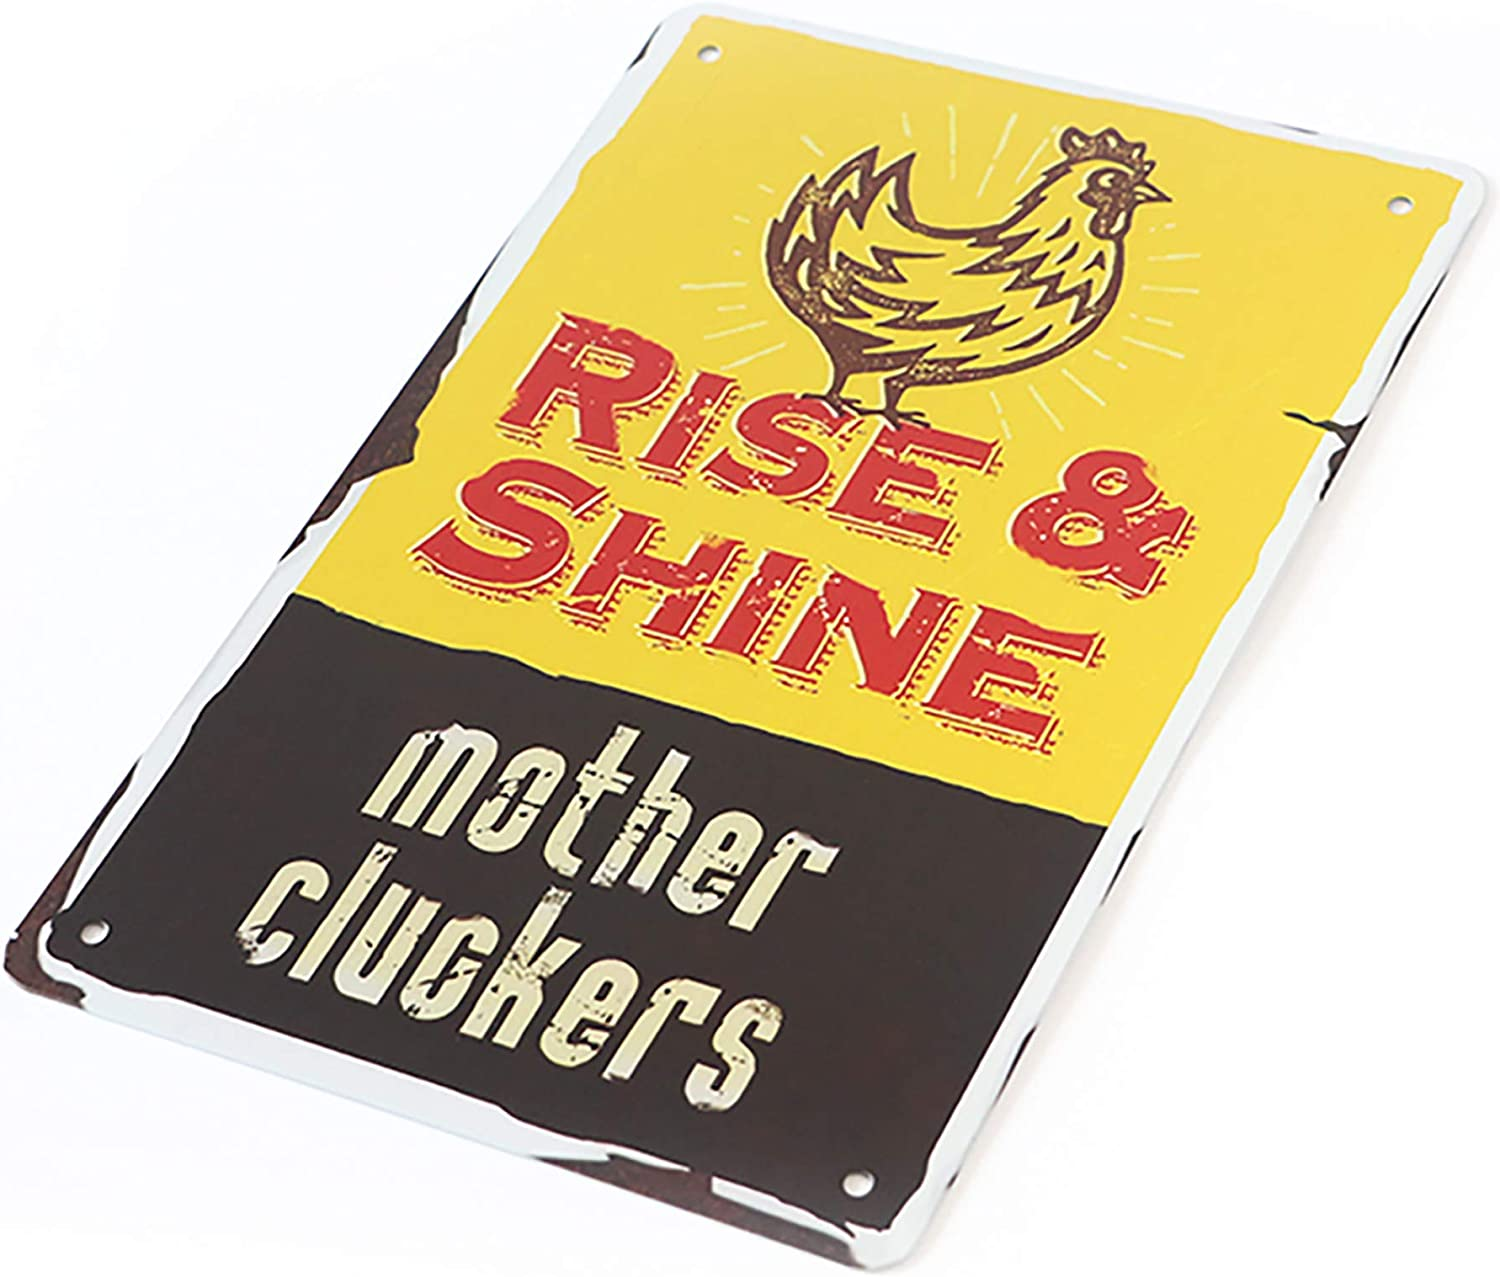 MeowPrint Chicken Décor Rise and Shine Mother Cluckers Country Home Decor Coop Tin Sign 8x12IN